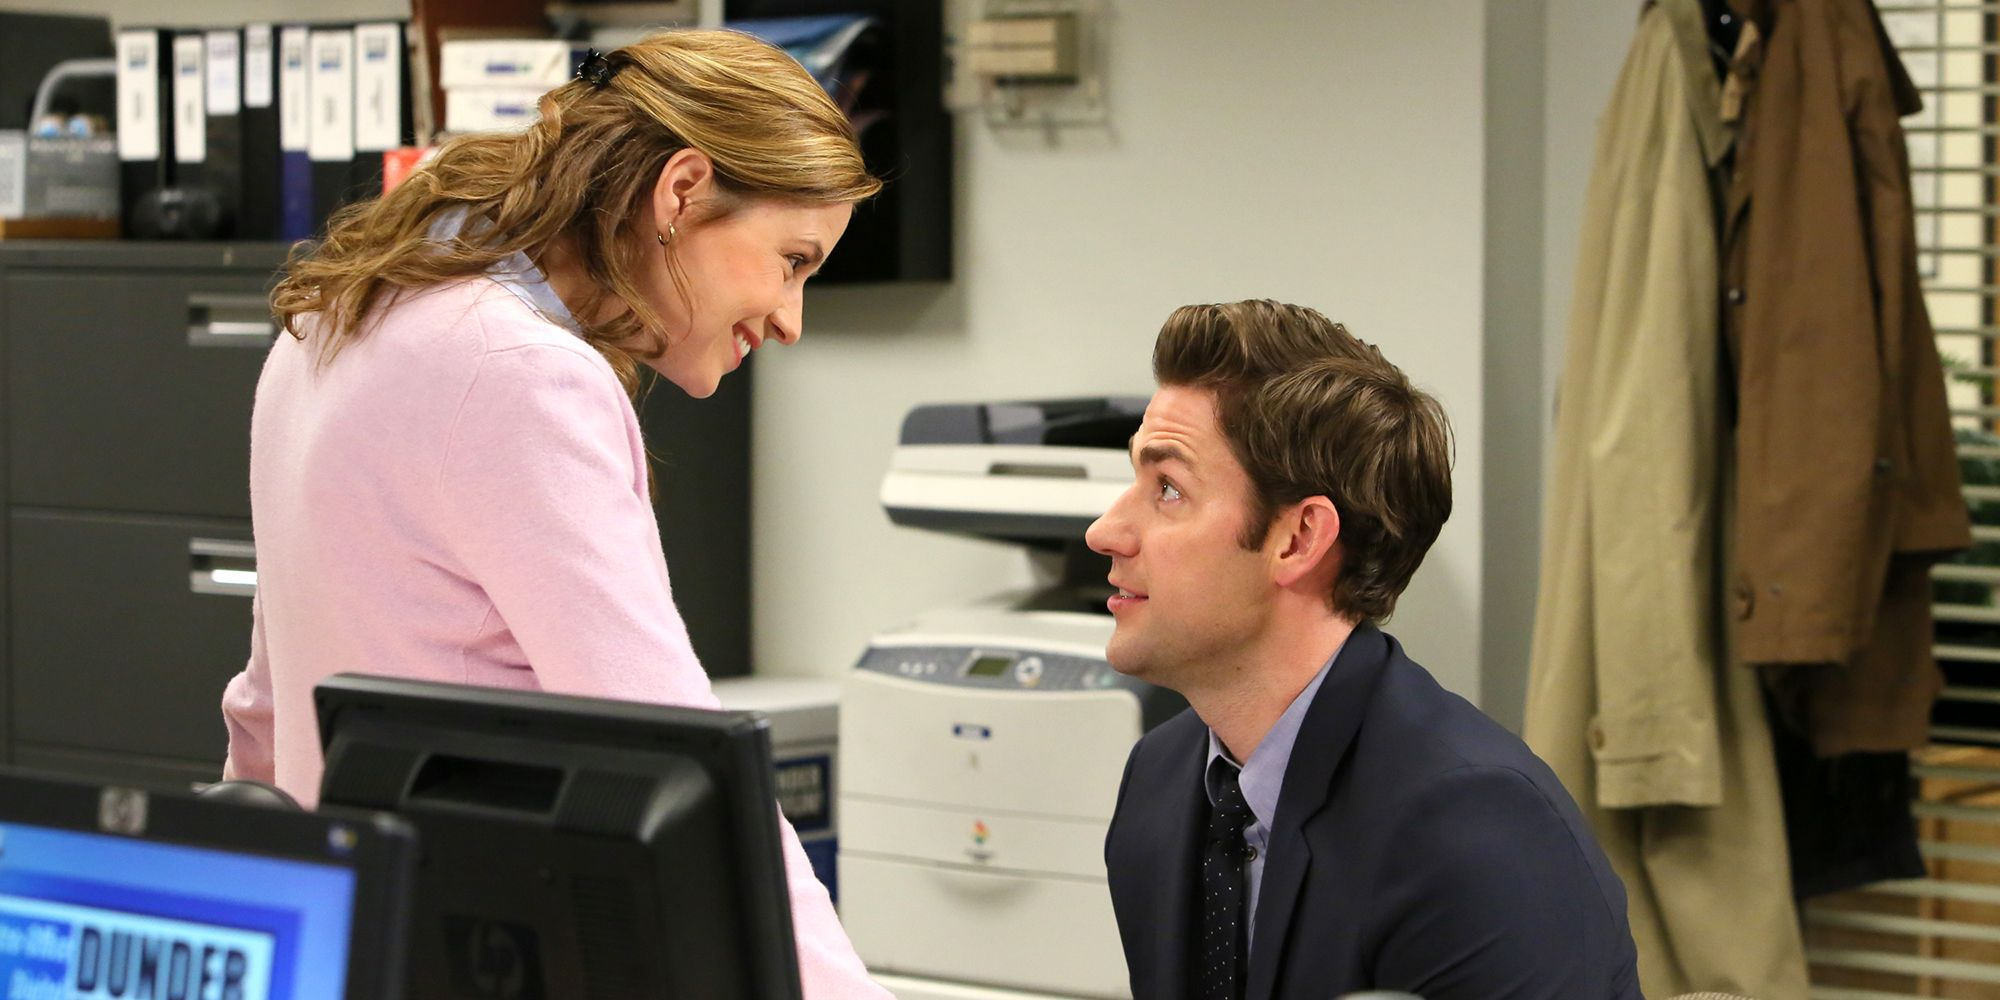 How to Ask Out a Coworker - Advice for Office Romances